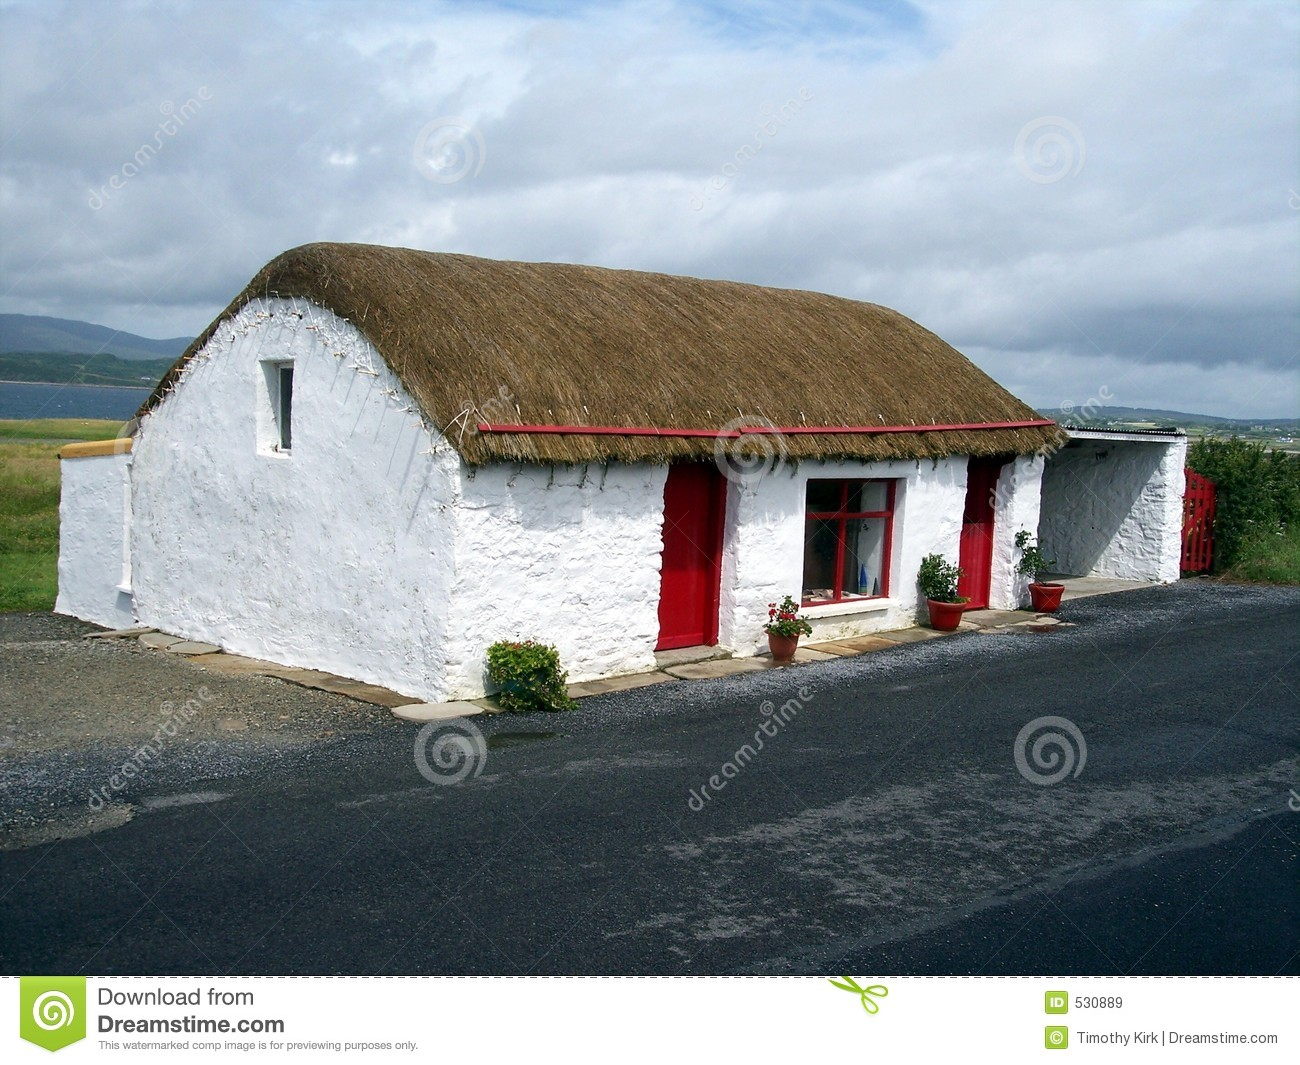 Co-stuga donegal thatched ireland